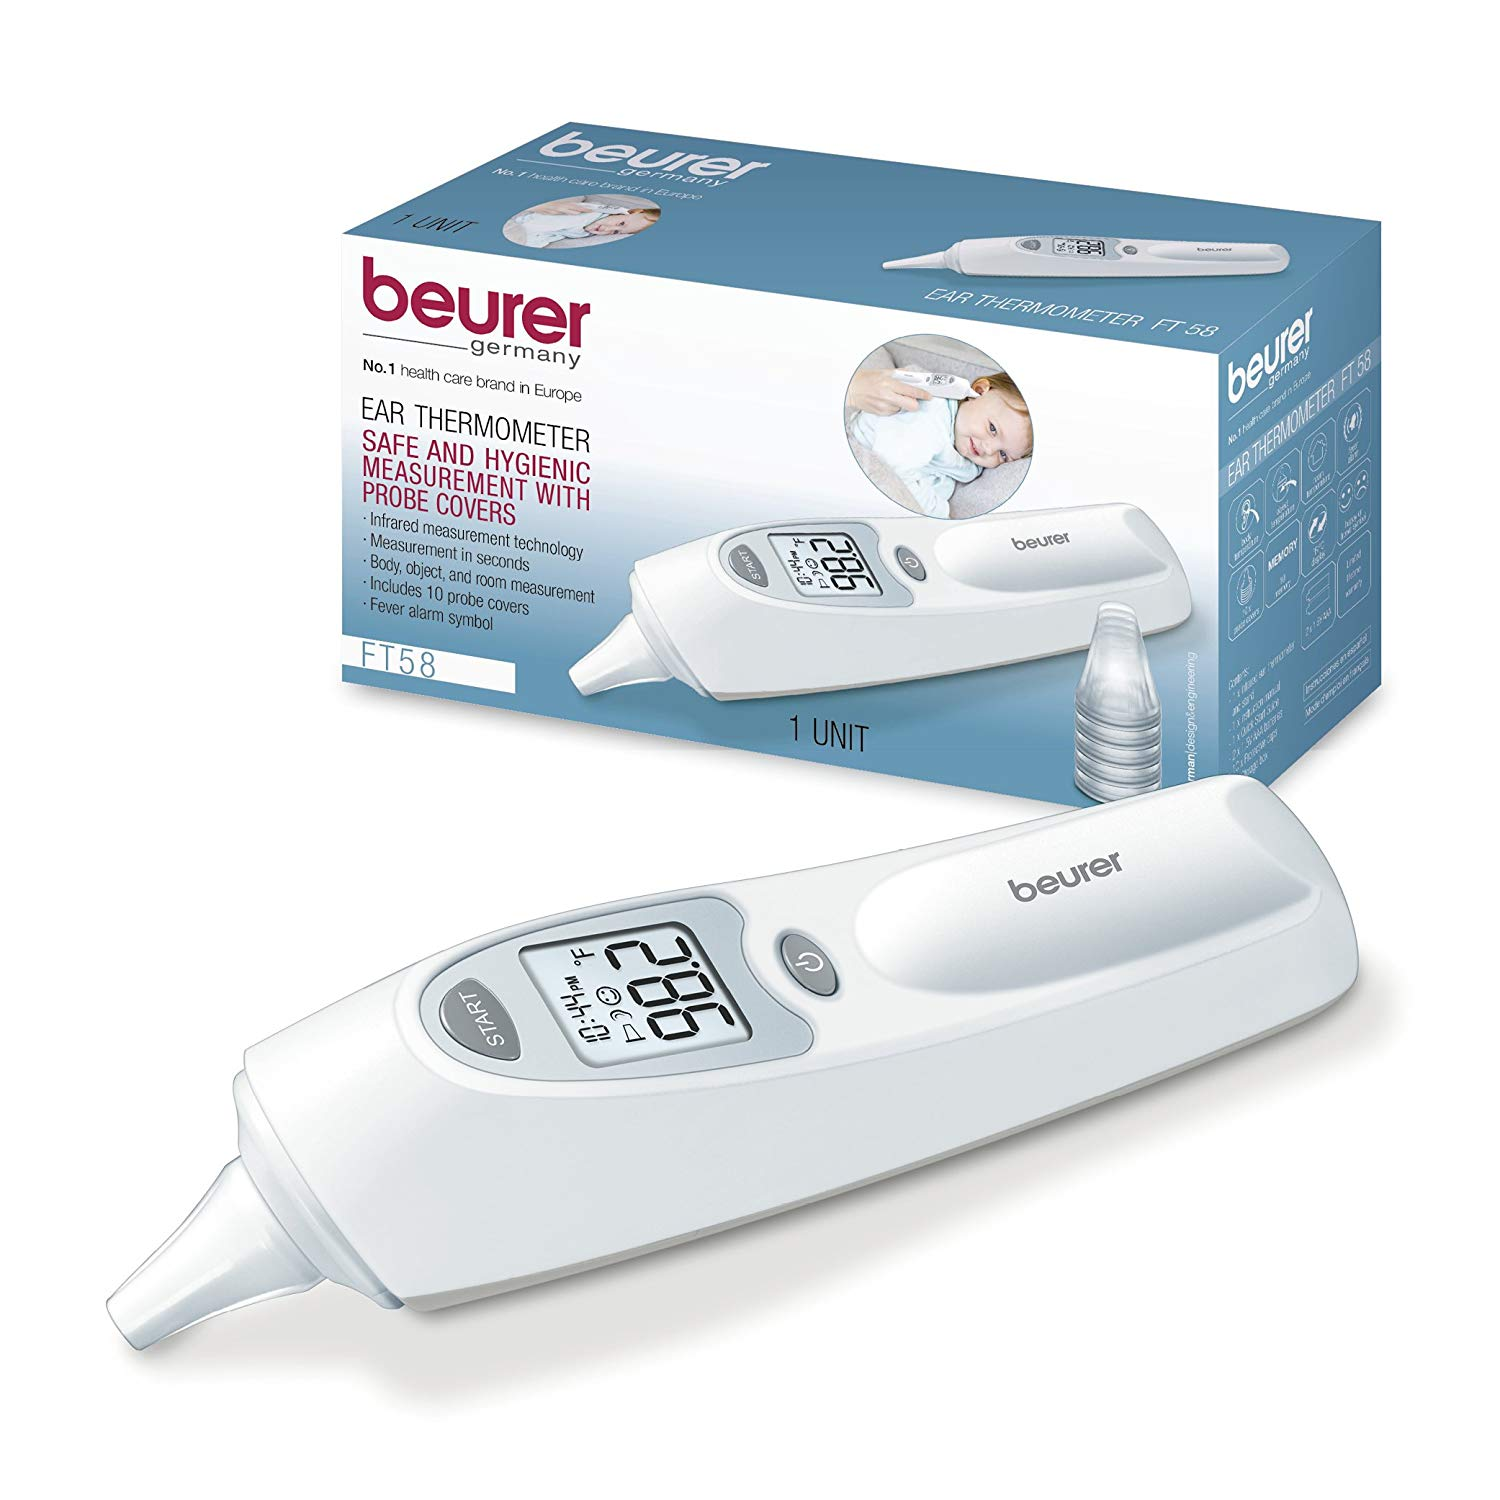 Beurer Digital Infrared Body, Room and Object Thermometer for Babies, Toddlers and Adults, FT58